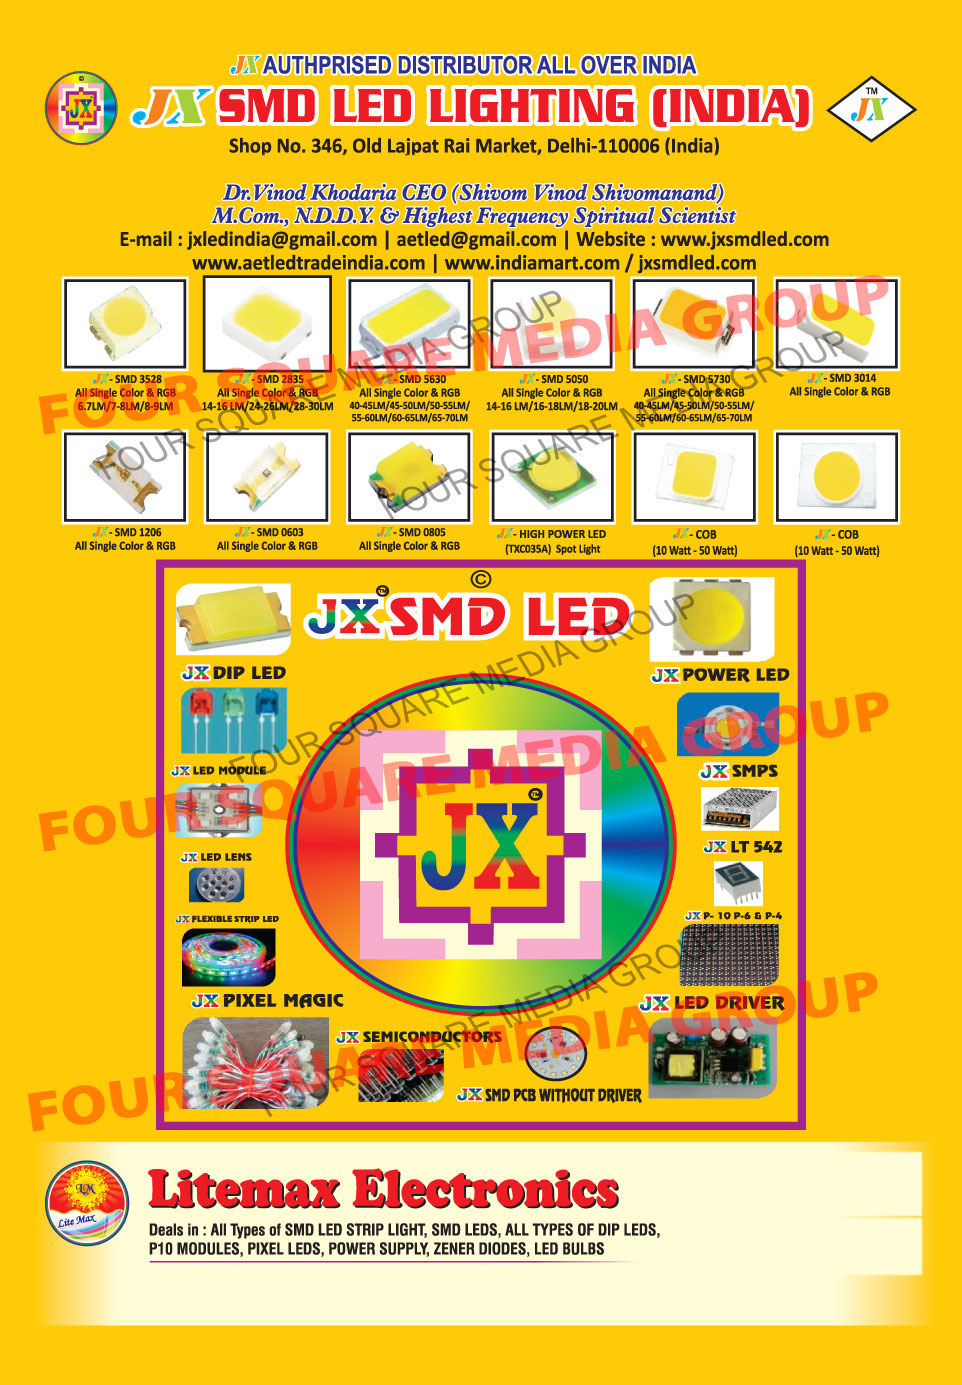 Single Colour SMD Leds, Single Color SMD Leds, RGB SMD Leds, COB Leds, DIP Leds, Led Modules, Led Lens, Flexible Led Strips, SMD PCB without Driver, SMD Printed Circuit Boards without Driver, Led Drivers, Power Leds